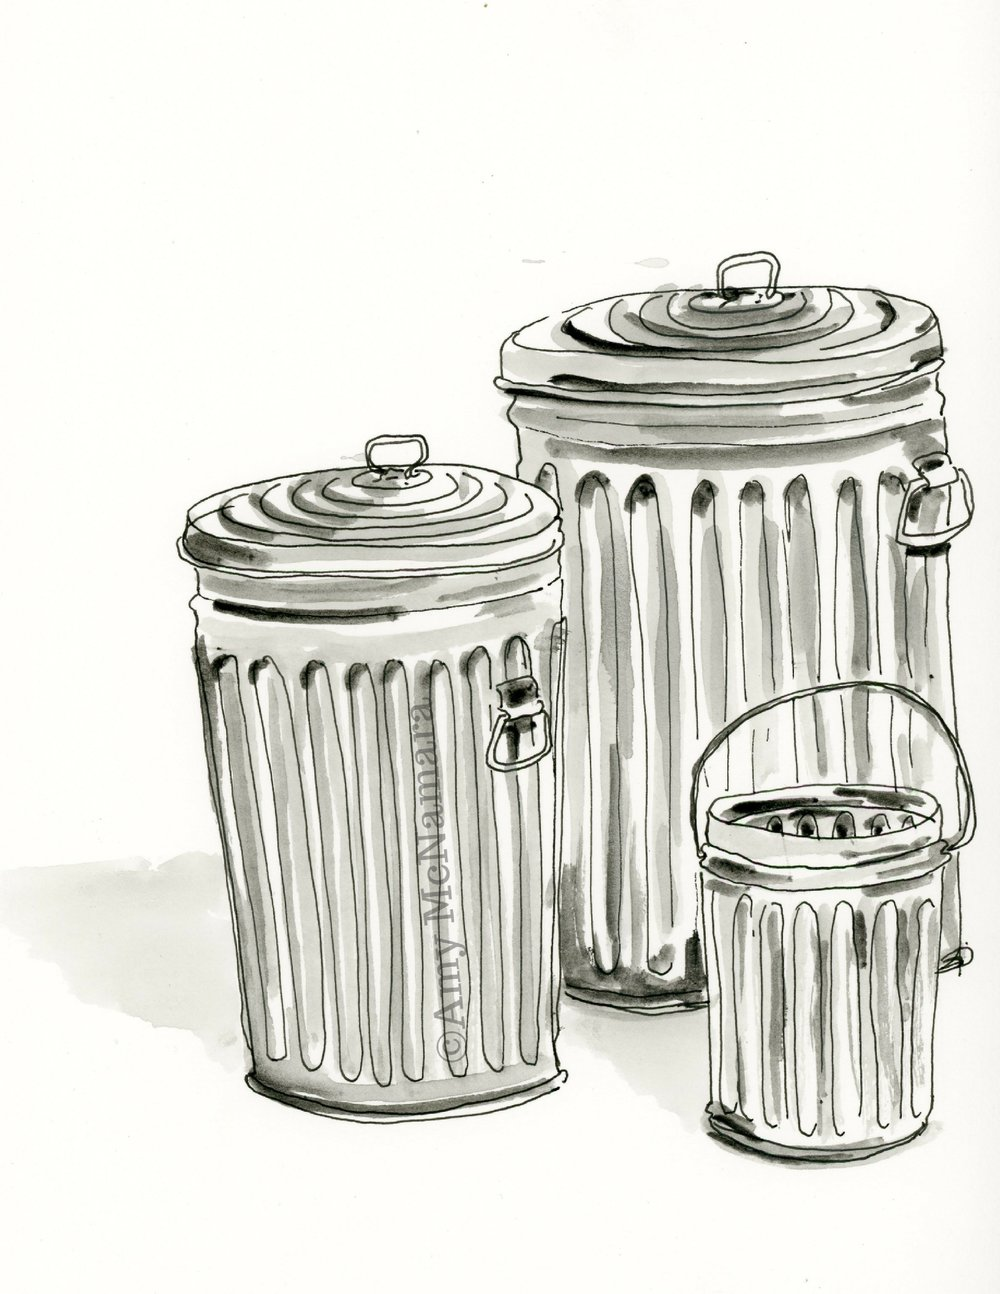 no. 182 Garbage Cans